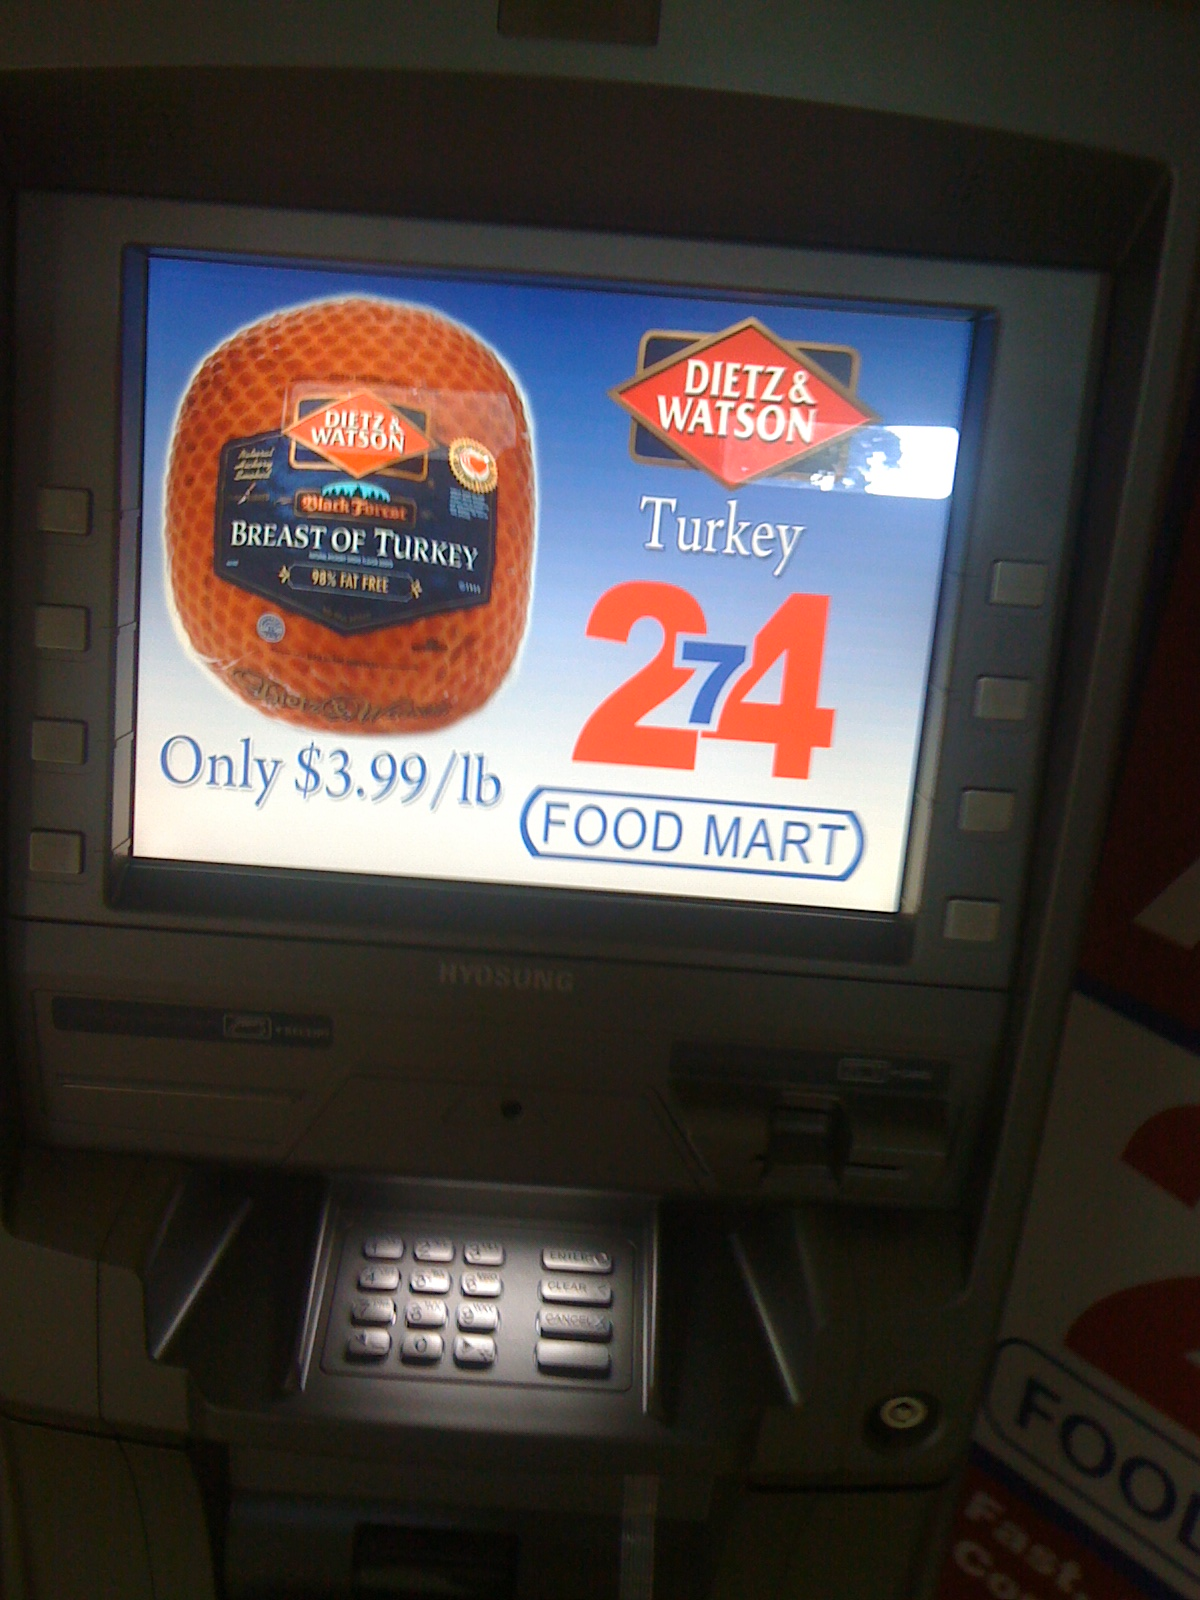 ATM - Only $3.99/lb